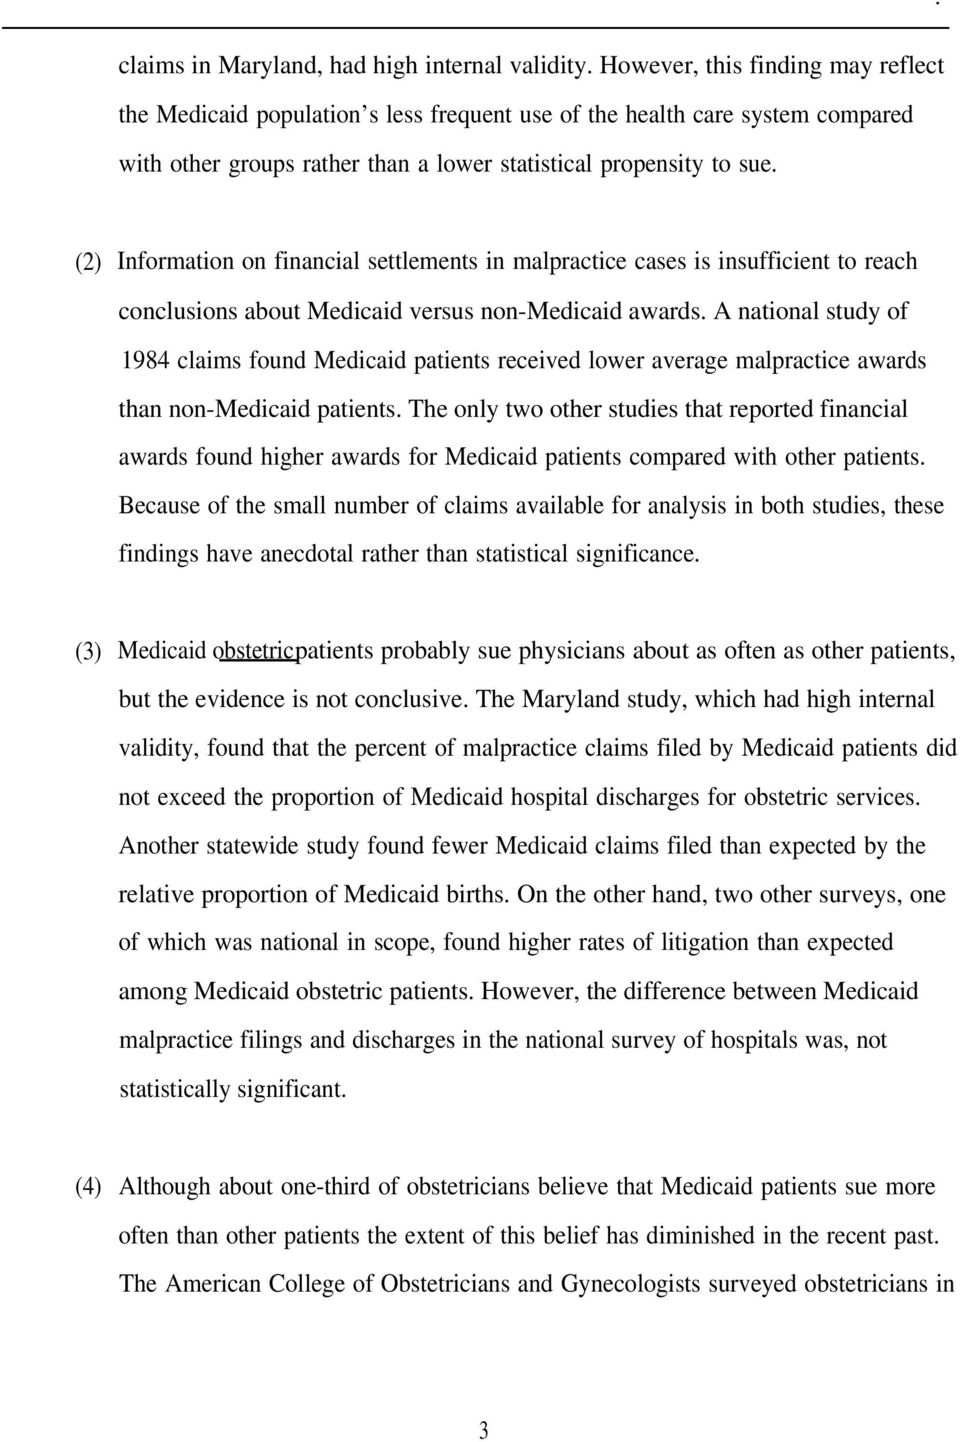 (2) Information on financial settlements in malpractice cases is insufficient to reach conclusions about Medicaid versus non-medicaid awards.